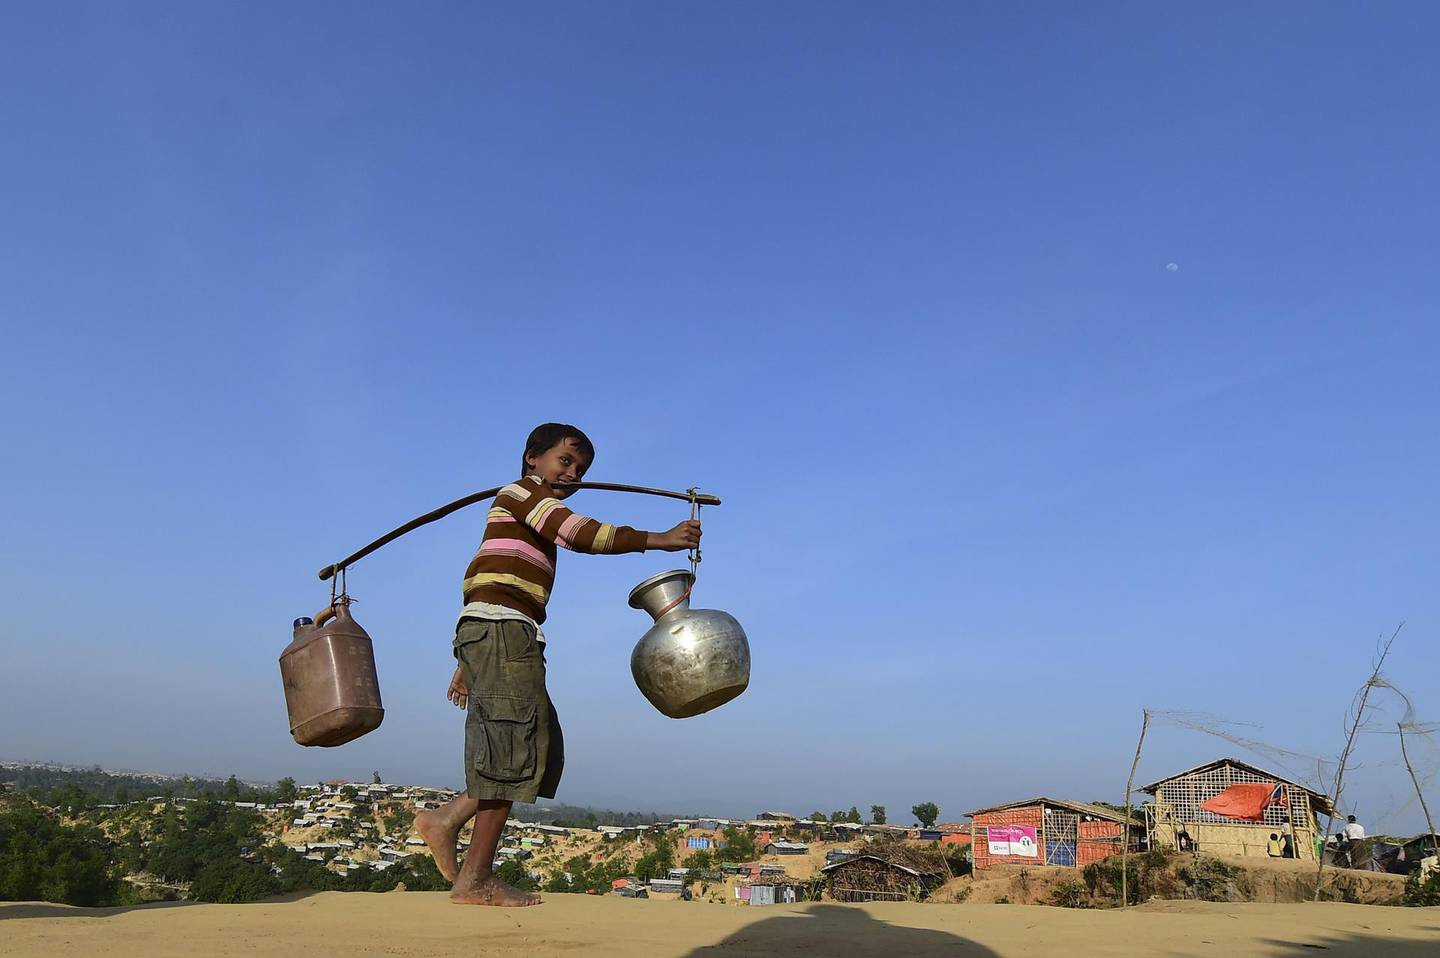 """TOPSHOT - A Rohingya refugee child walks back to his makeshift shelter after collecting water at Hakimpara refugee camp in Bangladesh's Ukhia district on January 27, 2018. The repatriation of hundreds of thousands of Rohingya Muslims who fled violence in Myanmar will not begin as planned, Bangladesh said January 22, with authorities admitting """"a lot of preparation"""" was still needed. / AFP PHOTO / Munir UZ ZAMAN"""